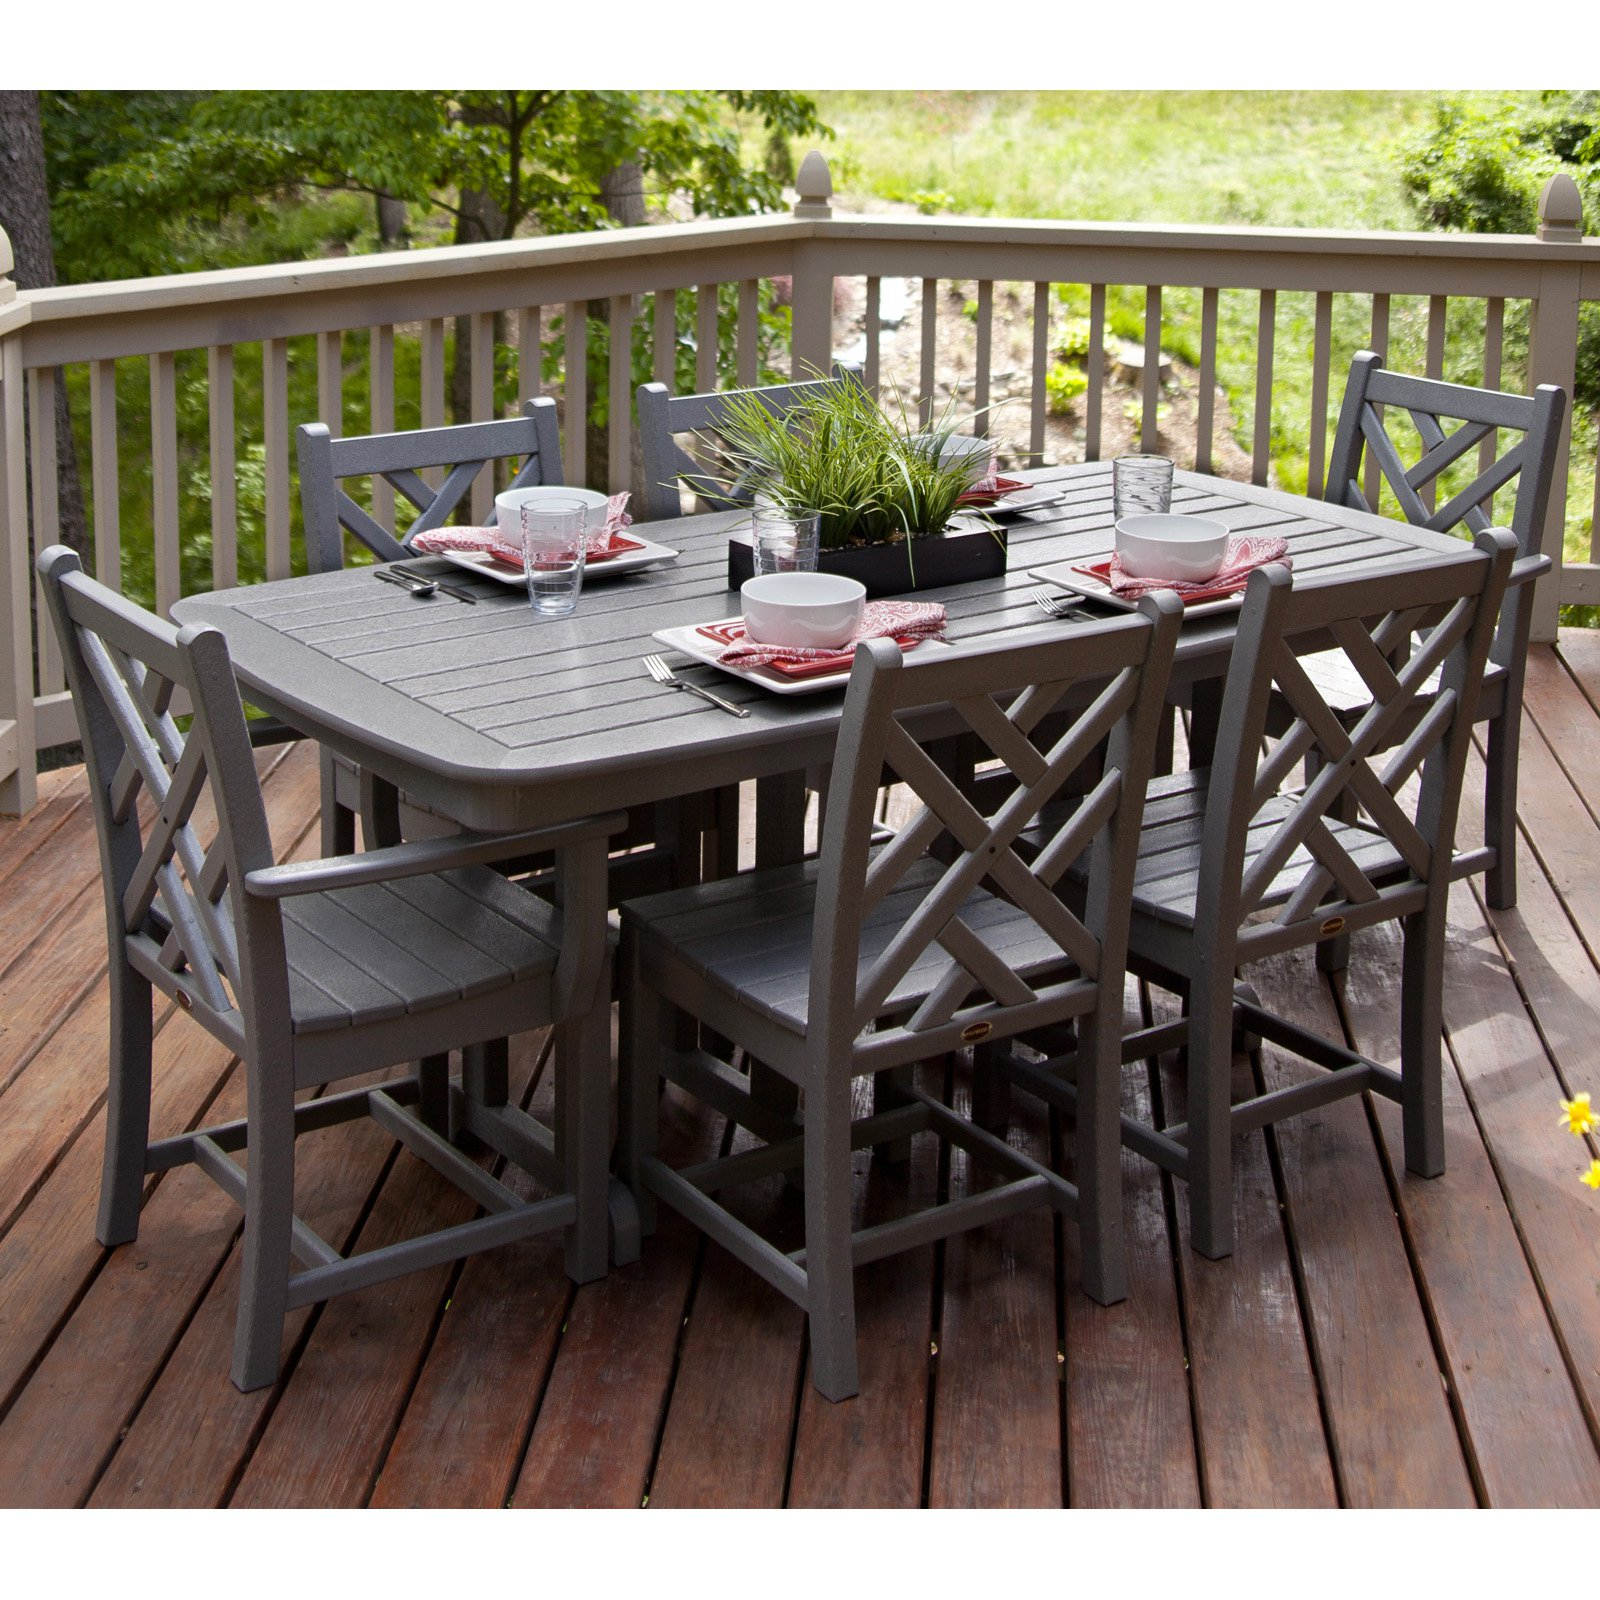 POLYWOOD® Chippendale Dining Set - Seats 6